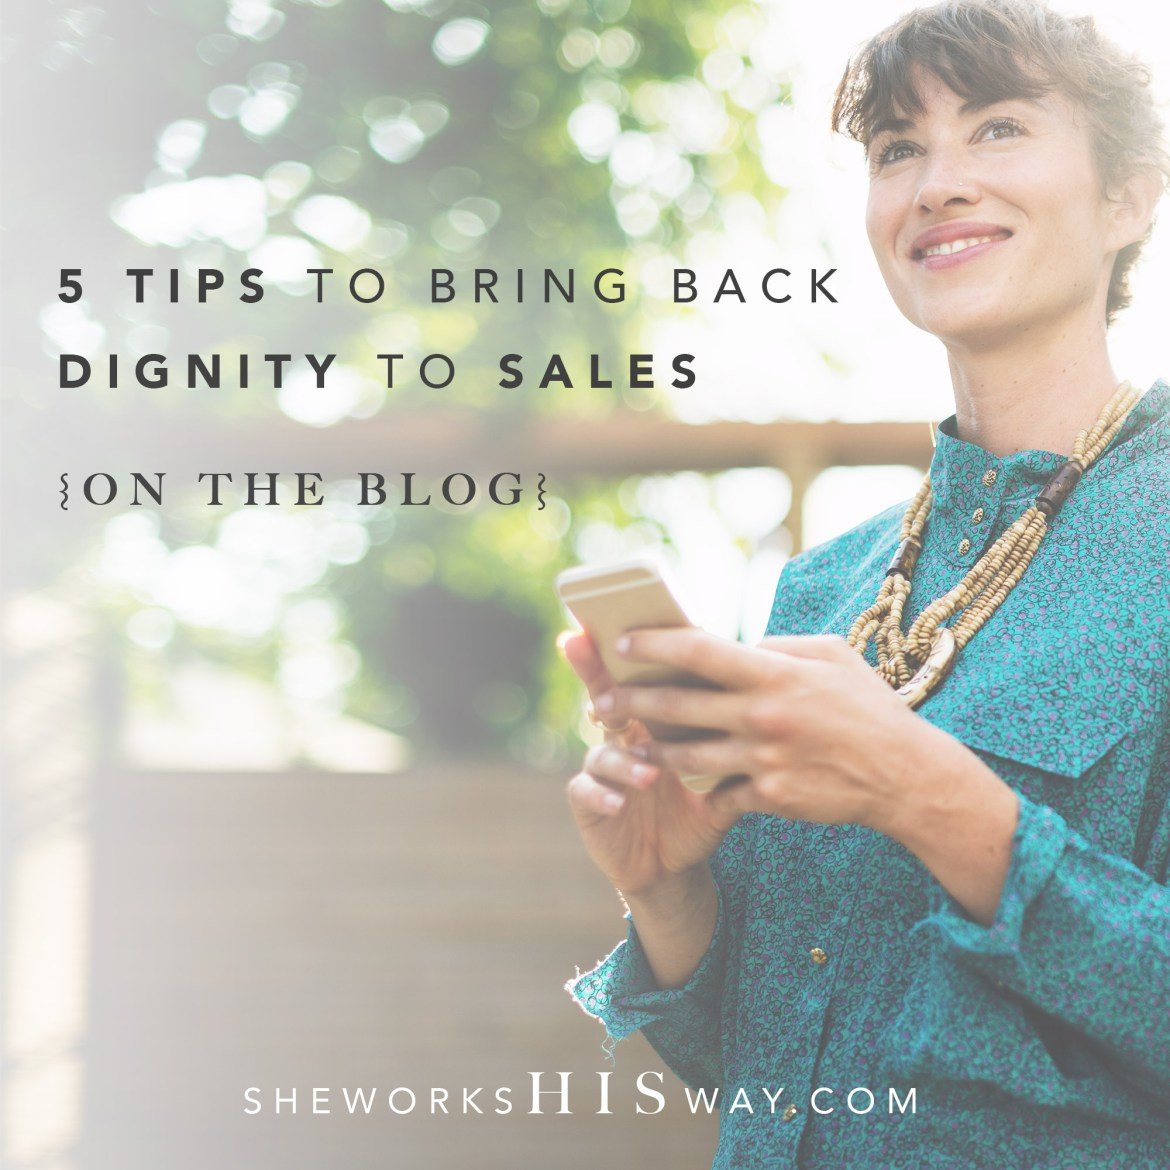 5 Tips to Bring Back Dignity to Sales